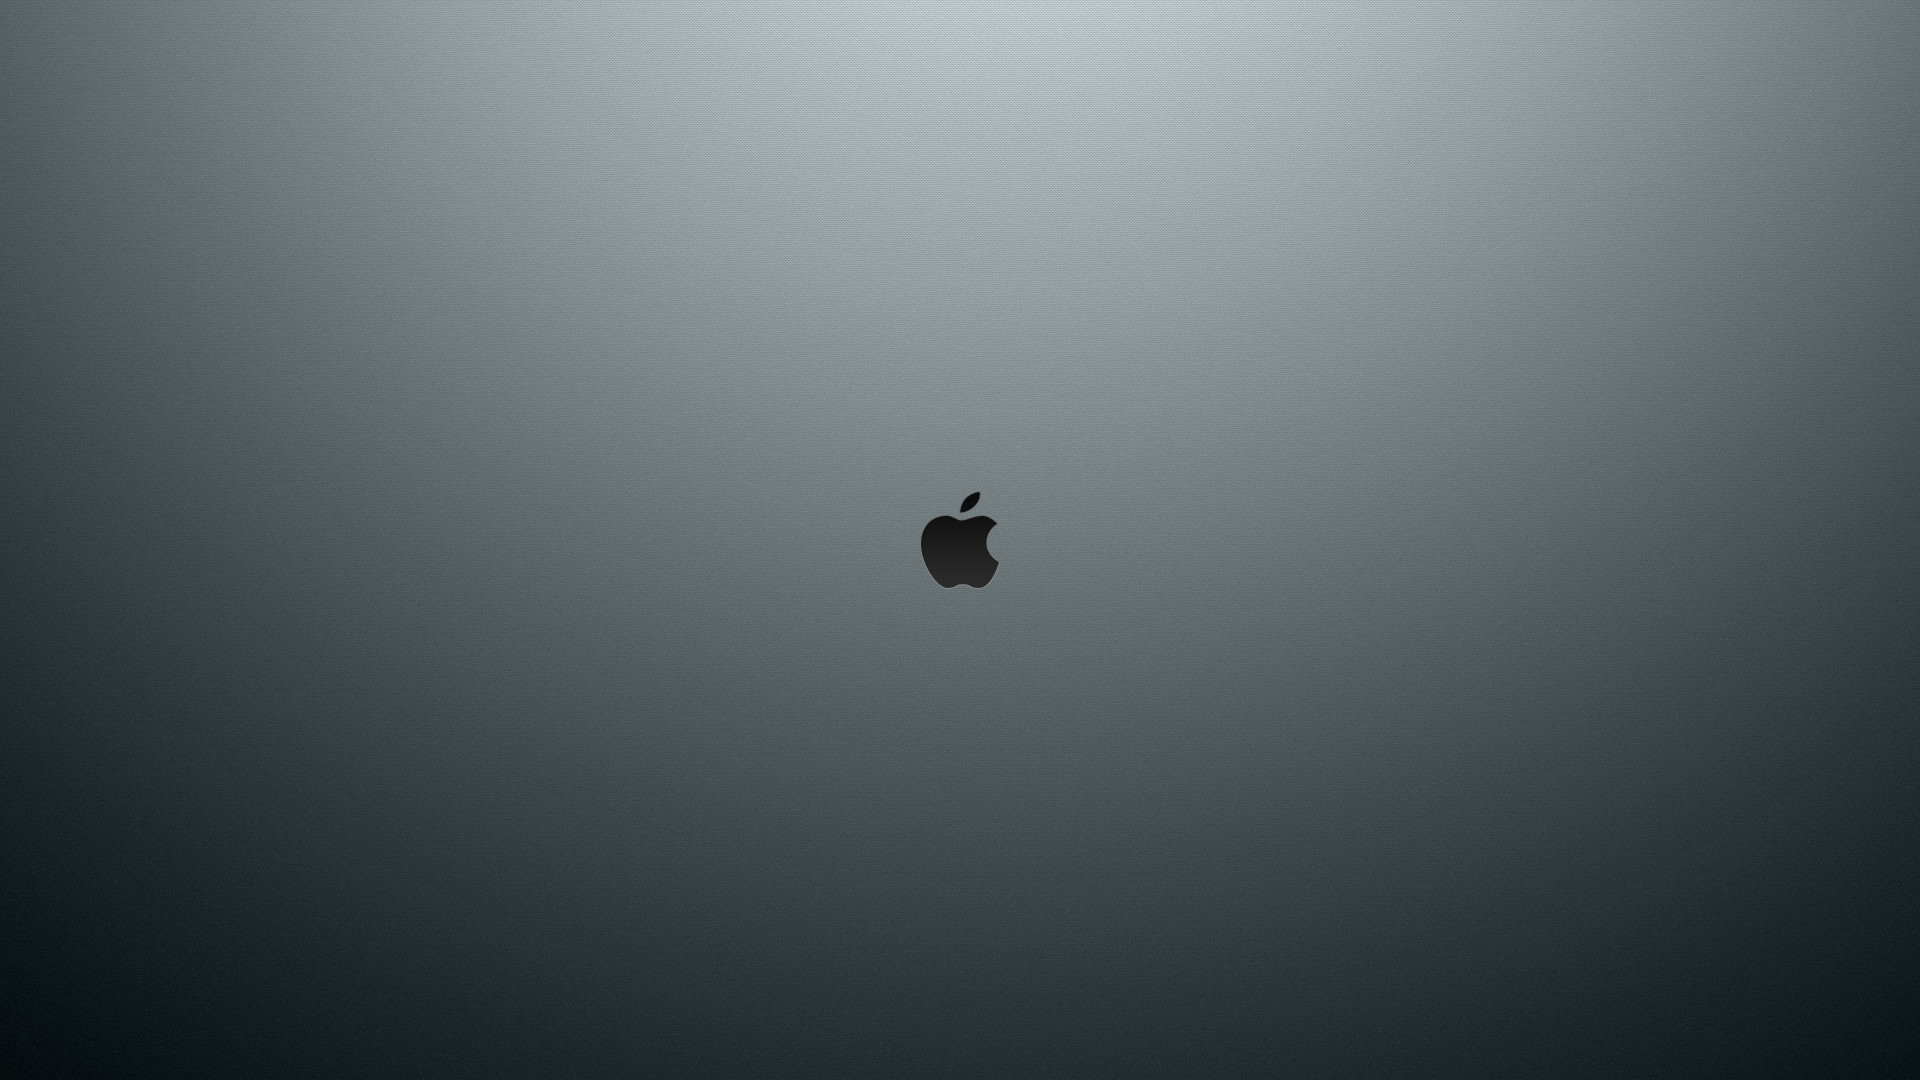 Res: 1920x1080, Dirty metal apple logo wallpaper Wallpaper Wide HD - HD Wallpapers